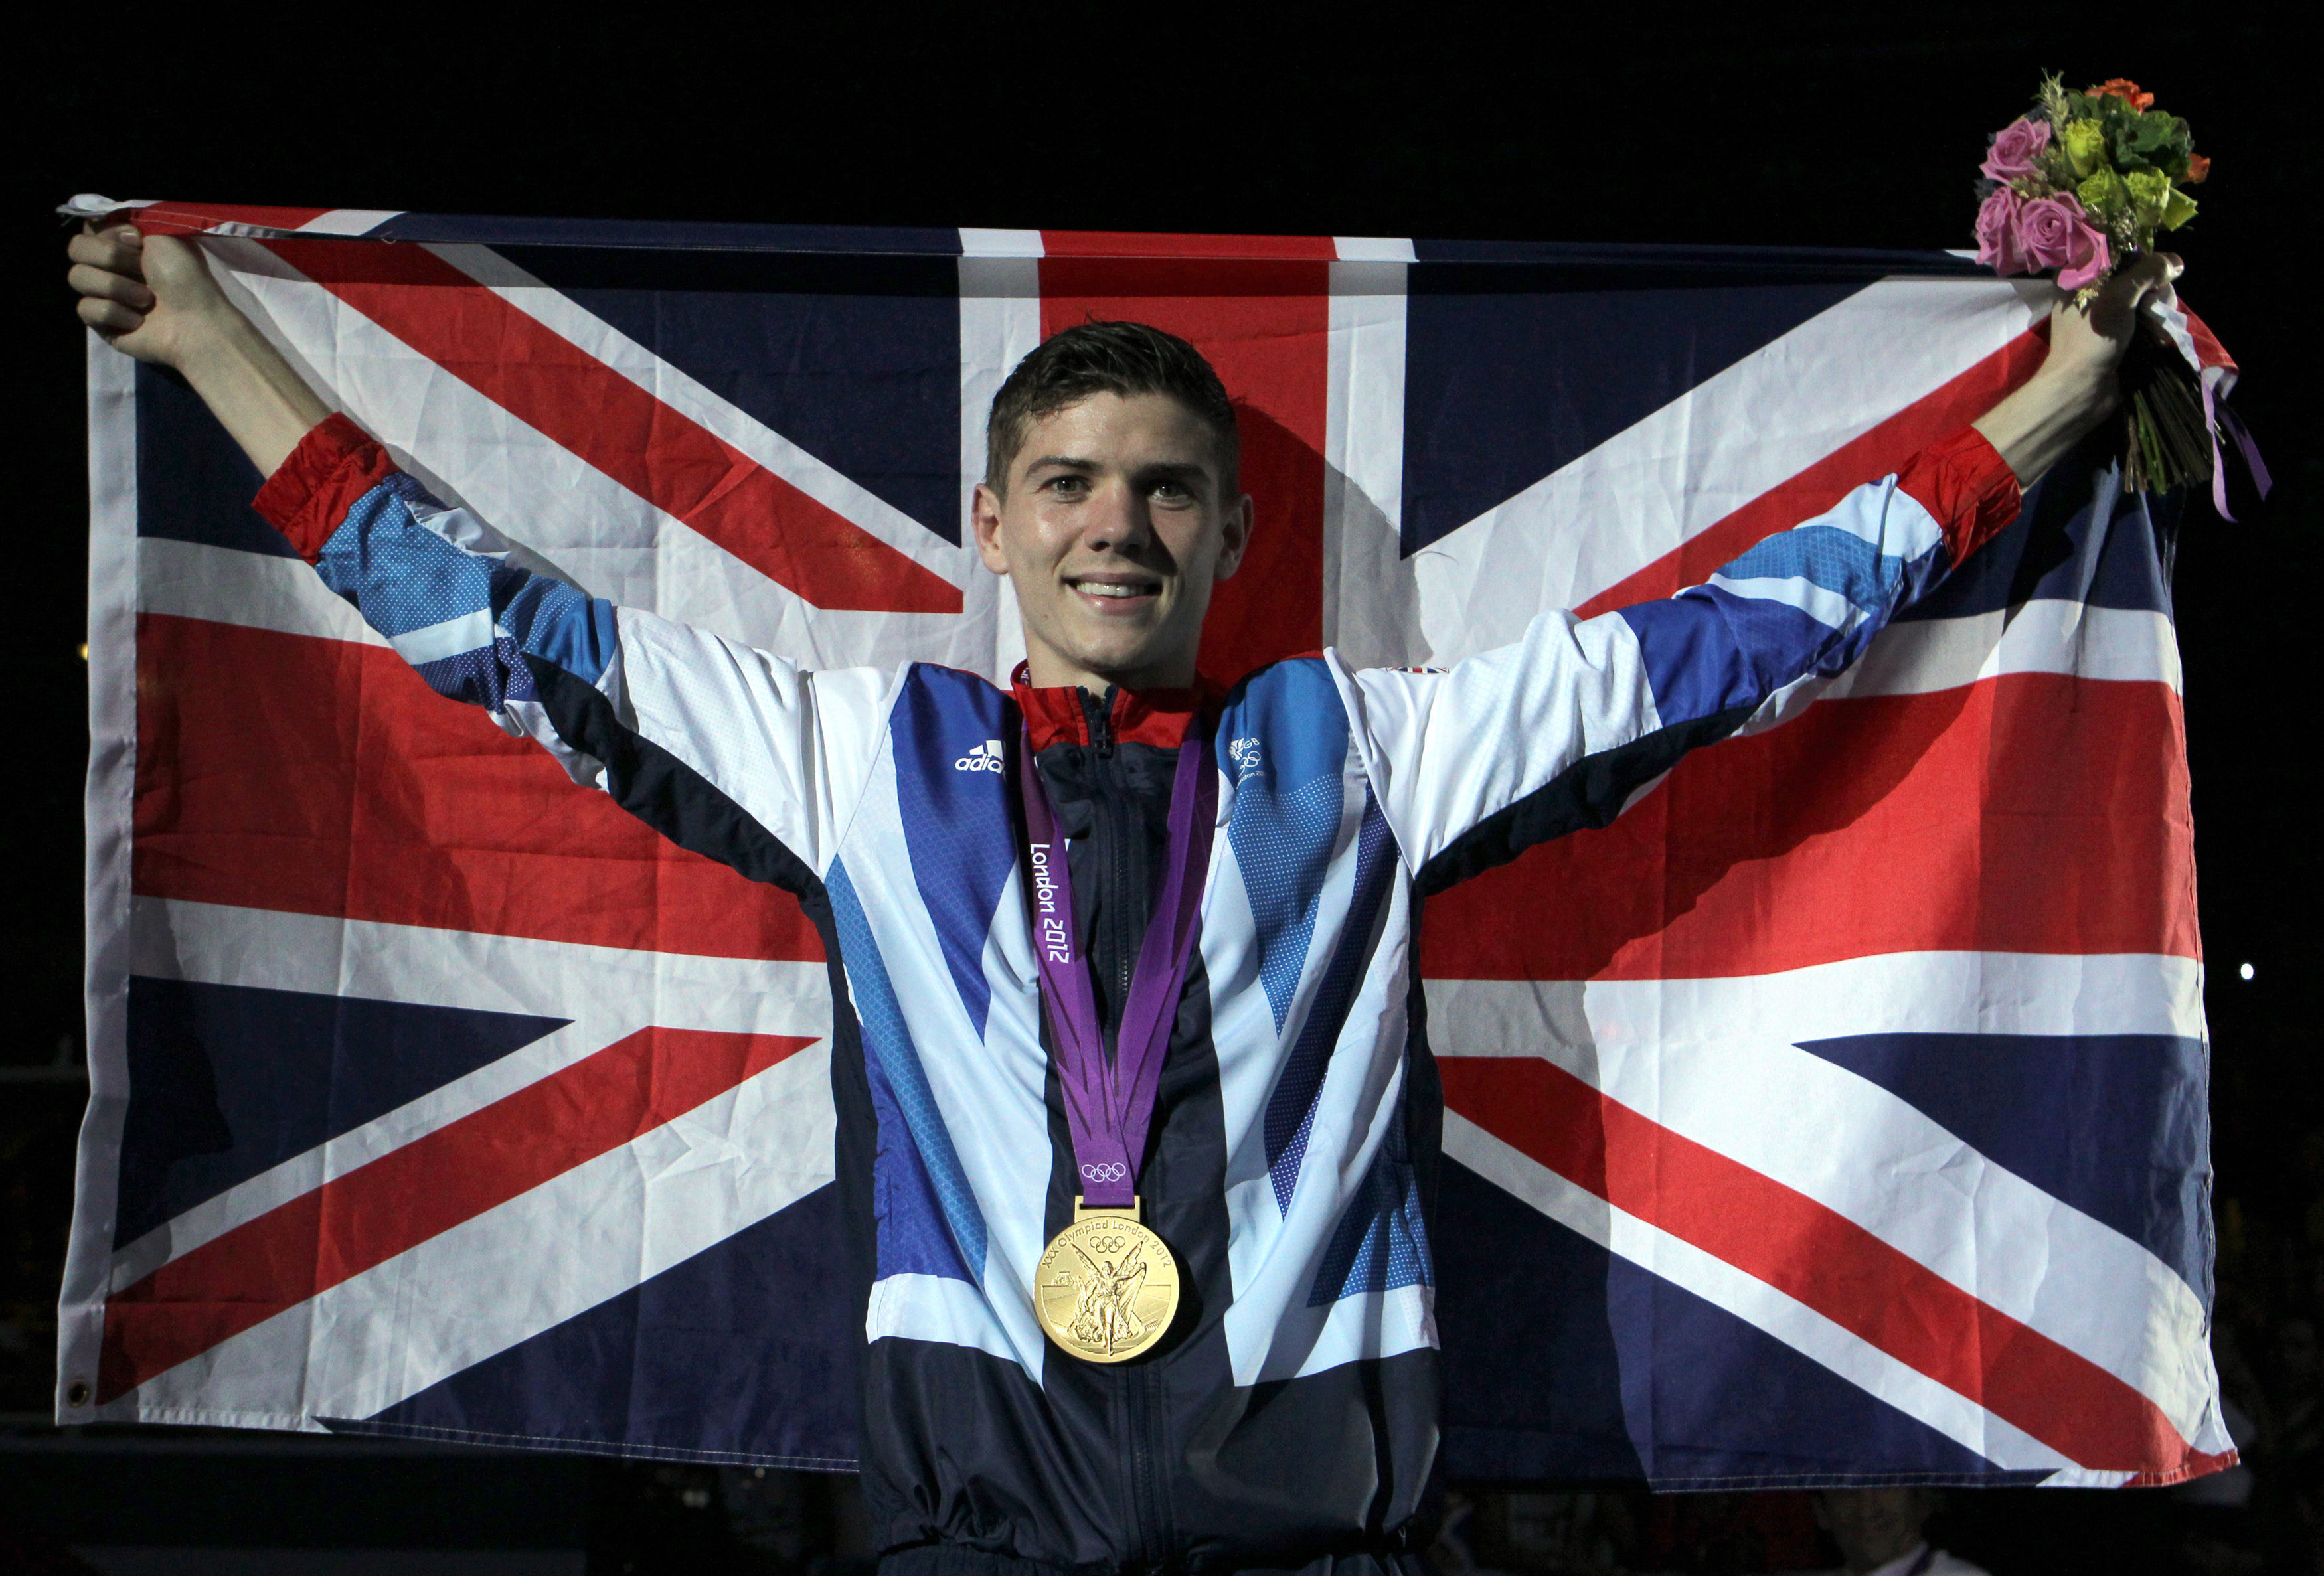 Campbell collects his gold medal at London 2012. Image: PA Images